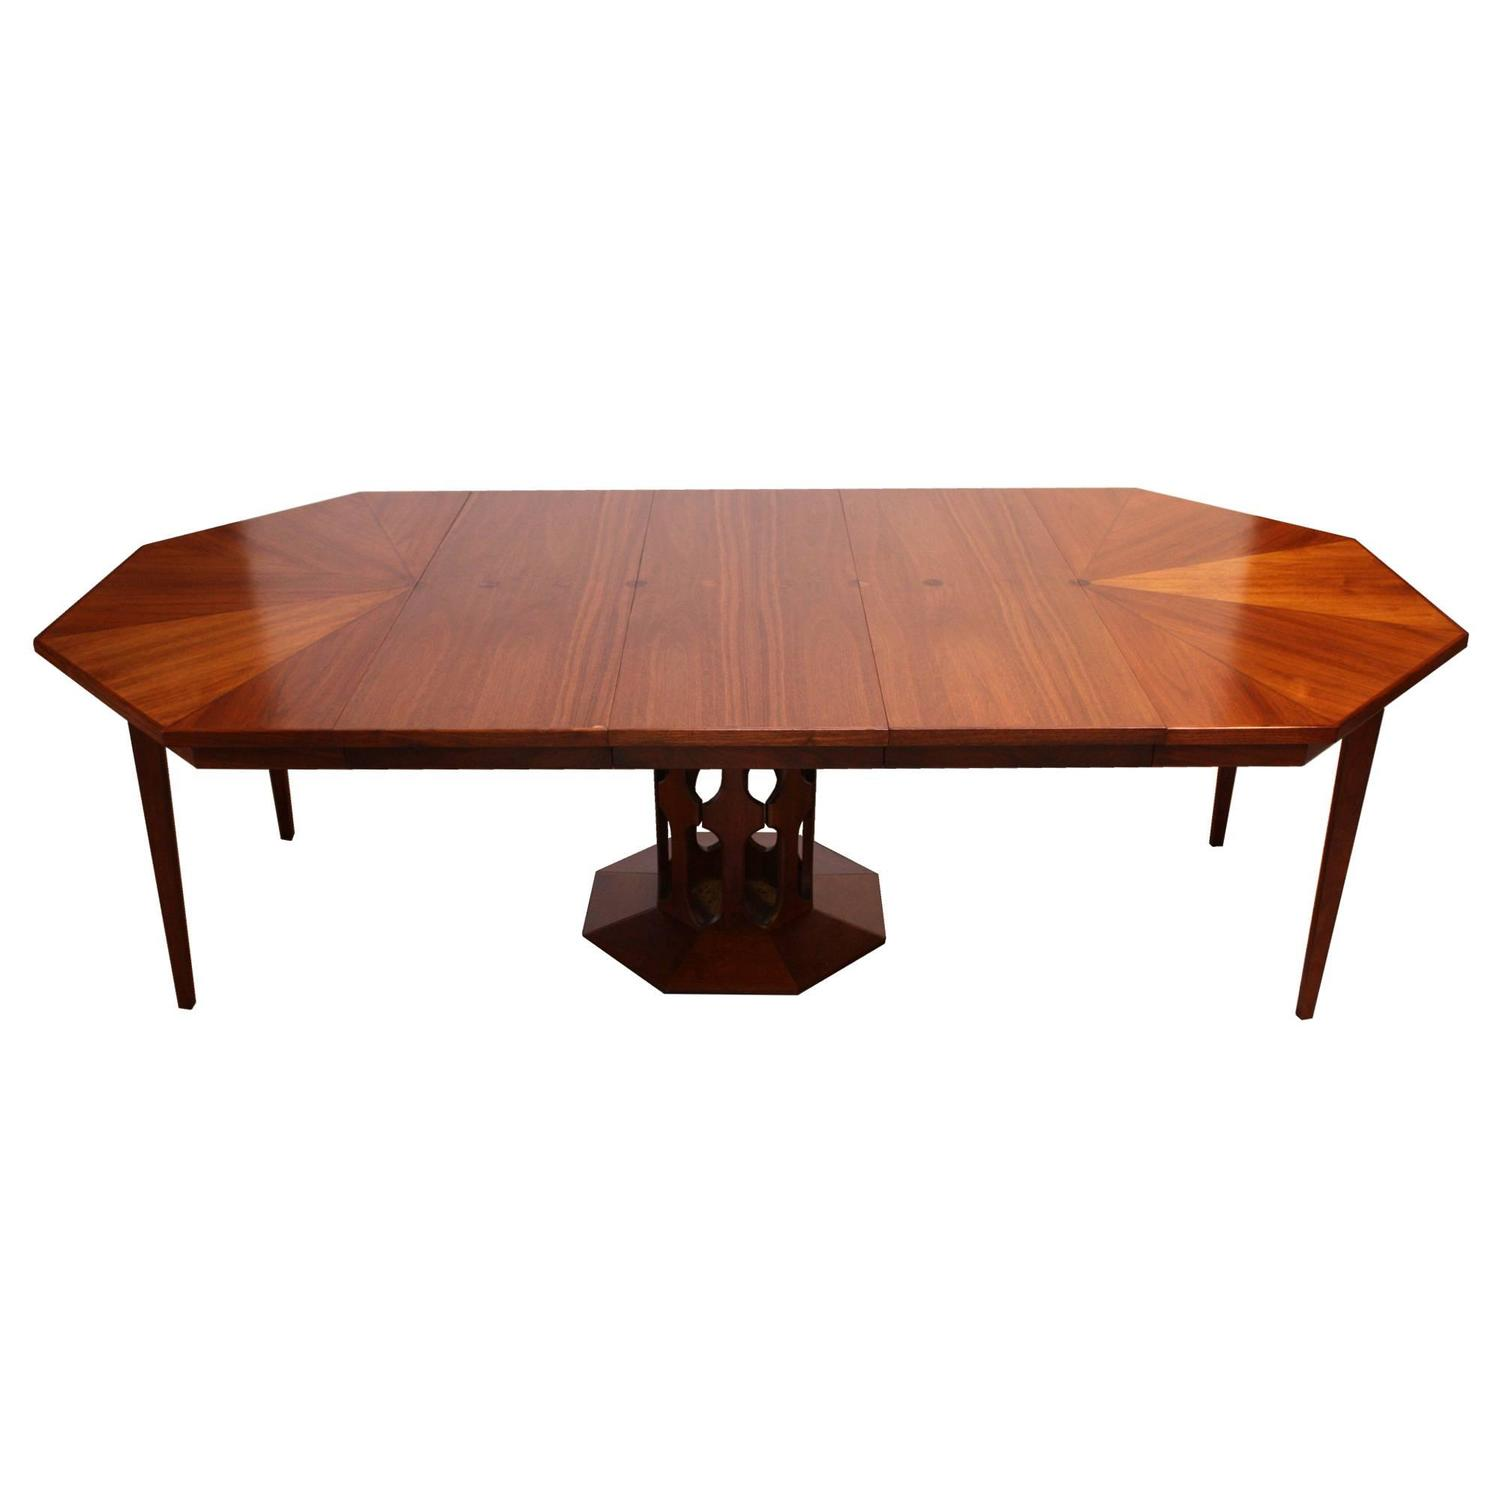 Octagonal Walnut Dining Table Attributed To Harvey Probber